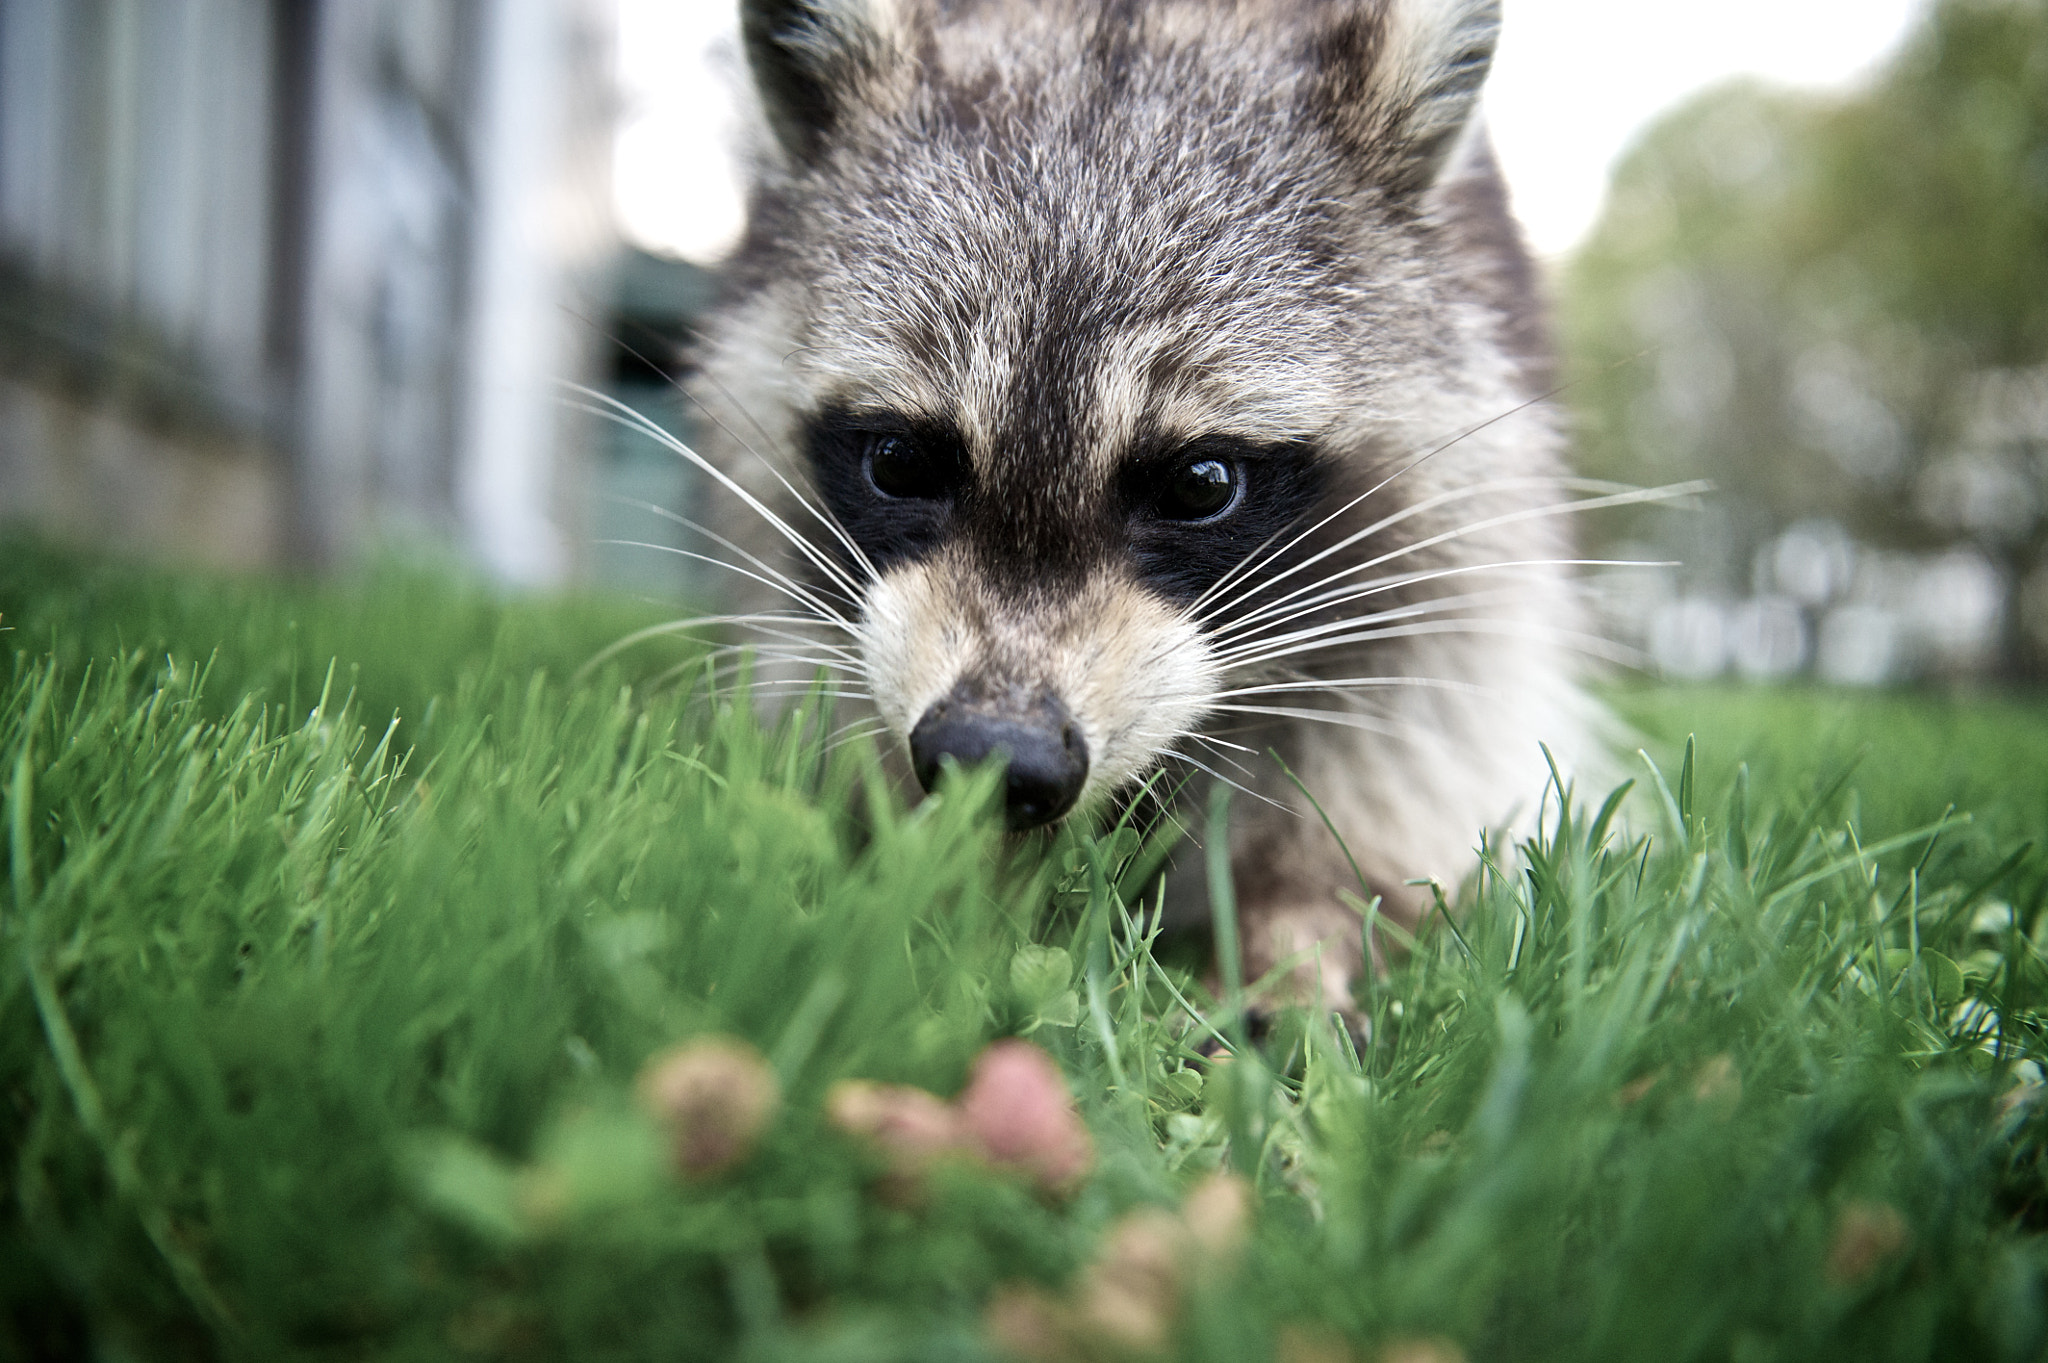 Photograph Boo the Raccoon*7485 by Mark Shannon on 500px